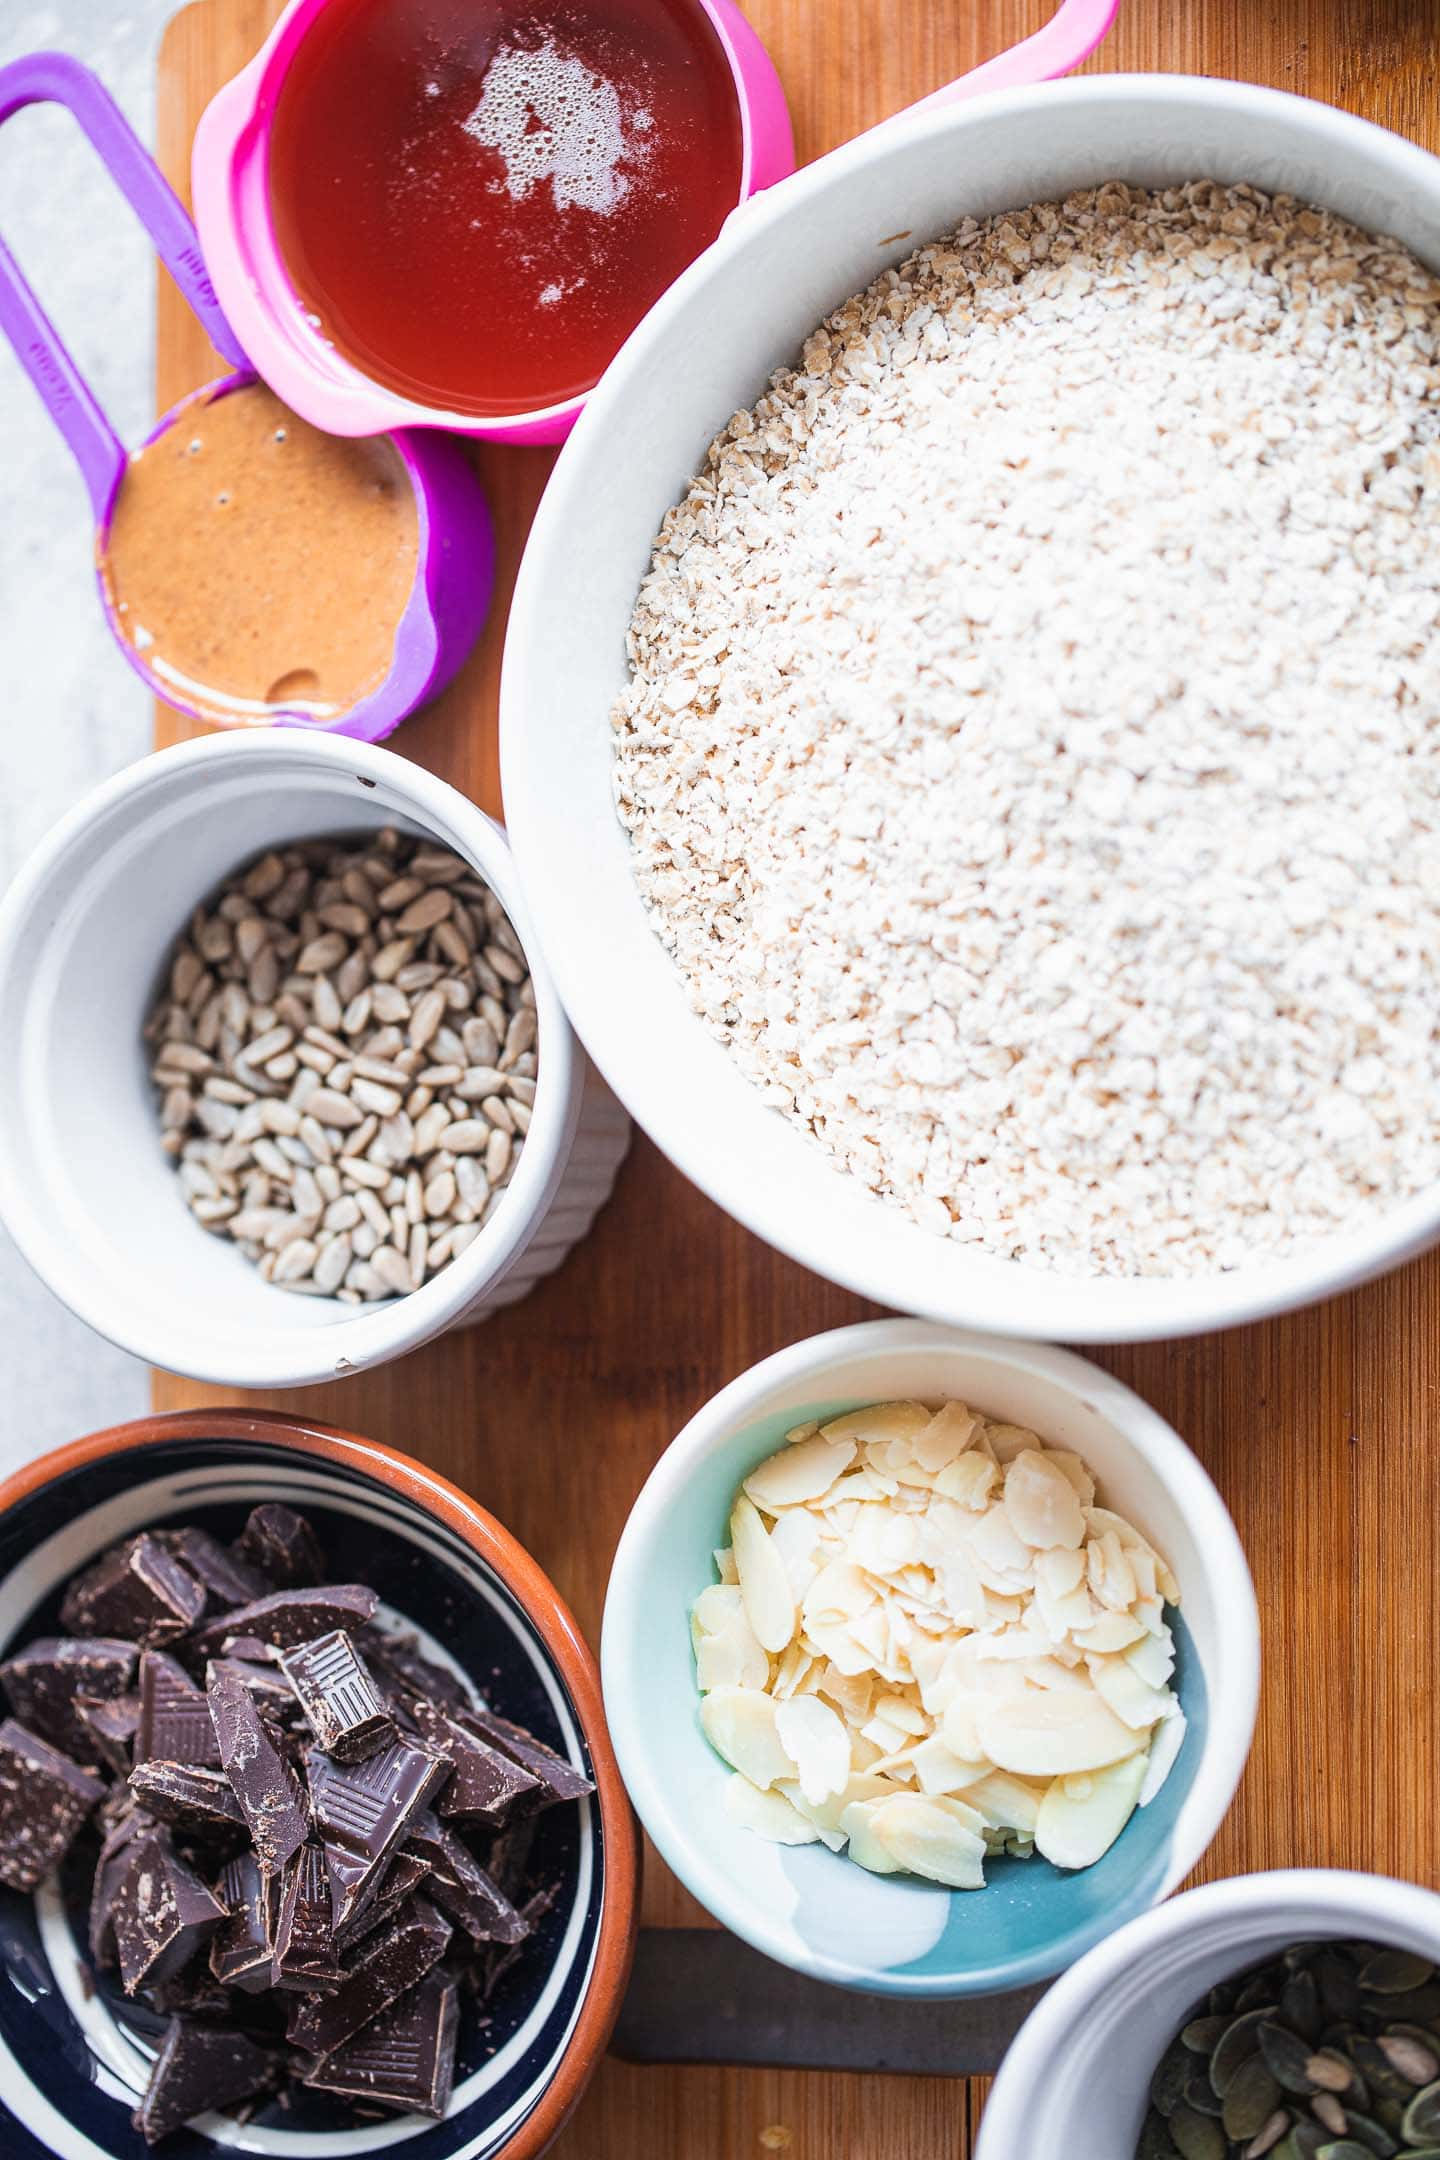 Ingredients for vegan chocolate granola bars